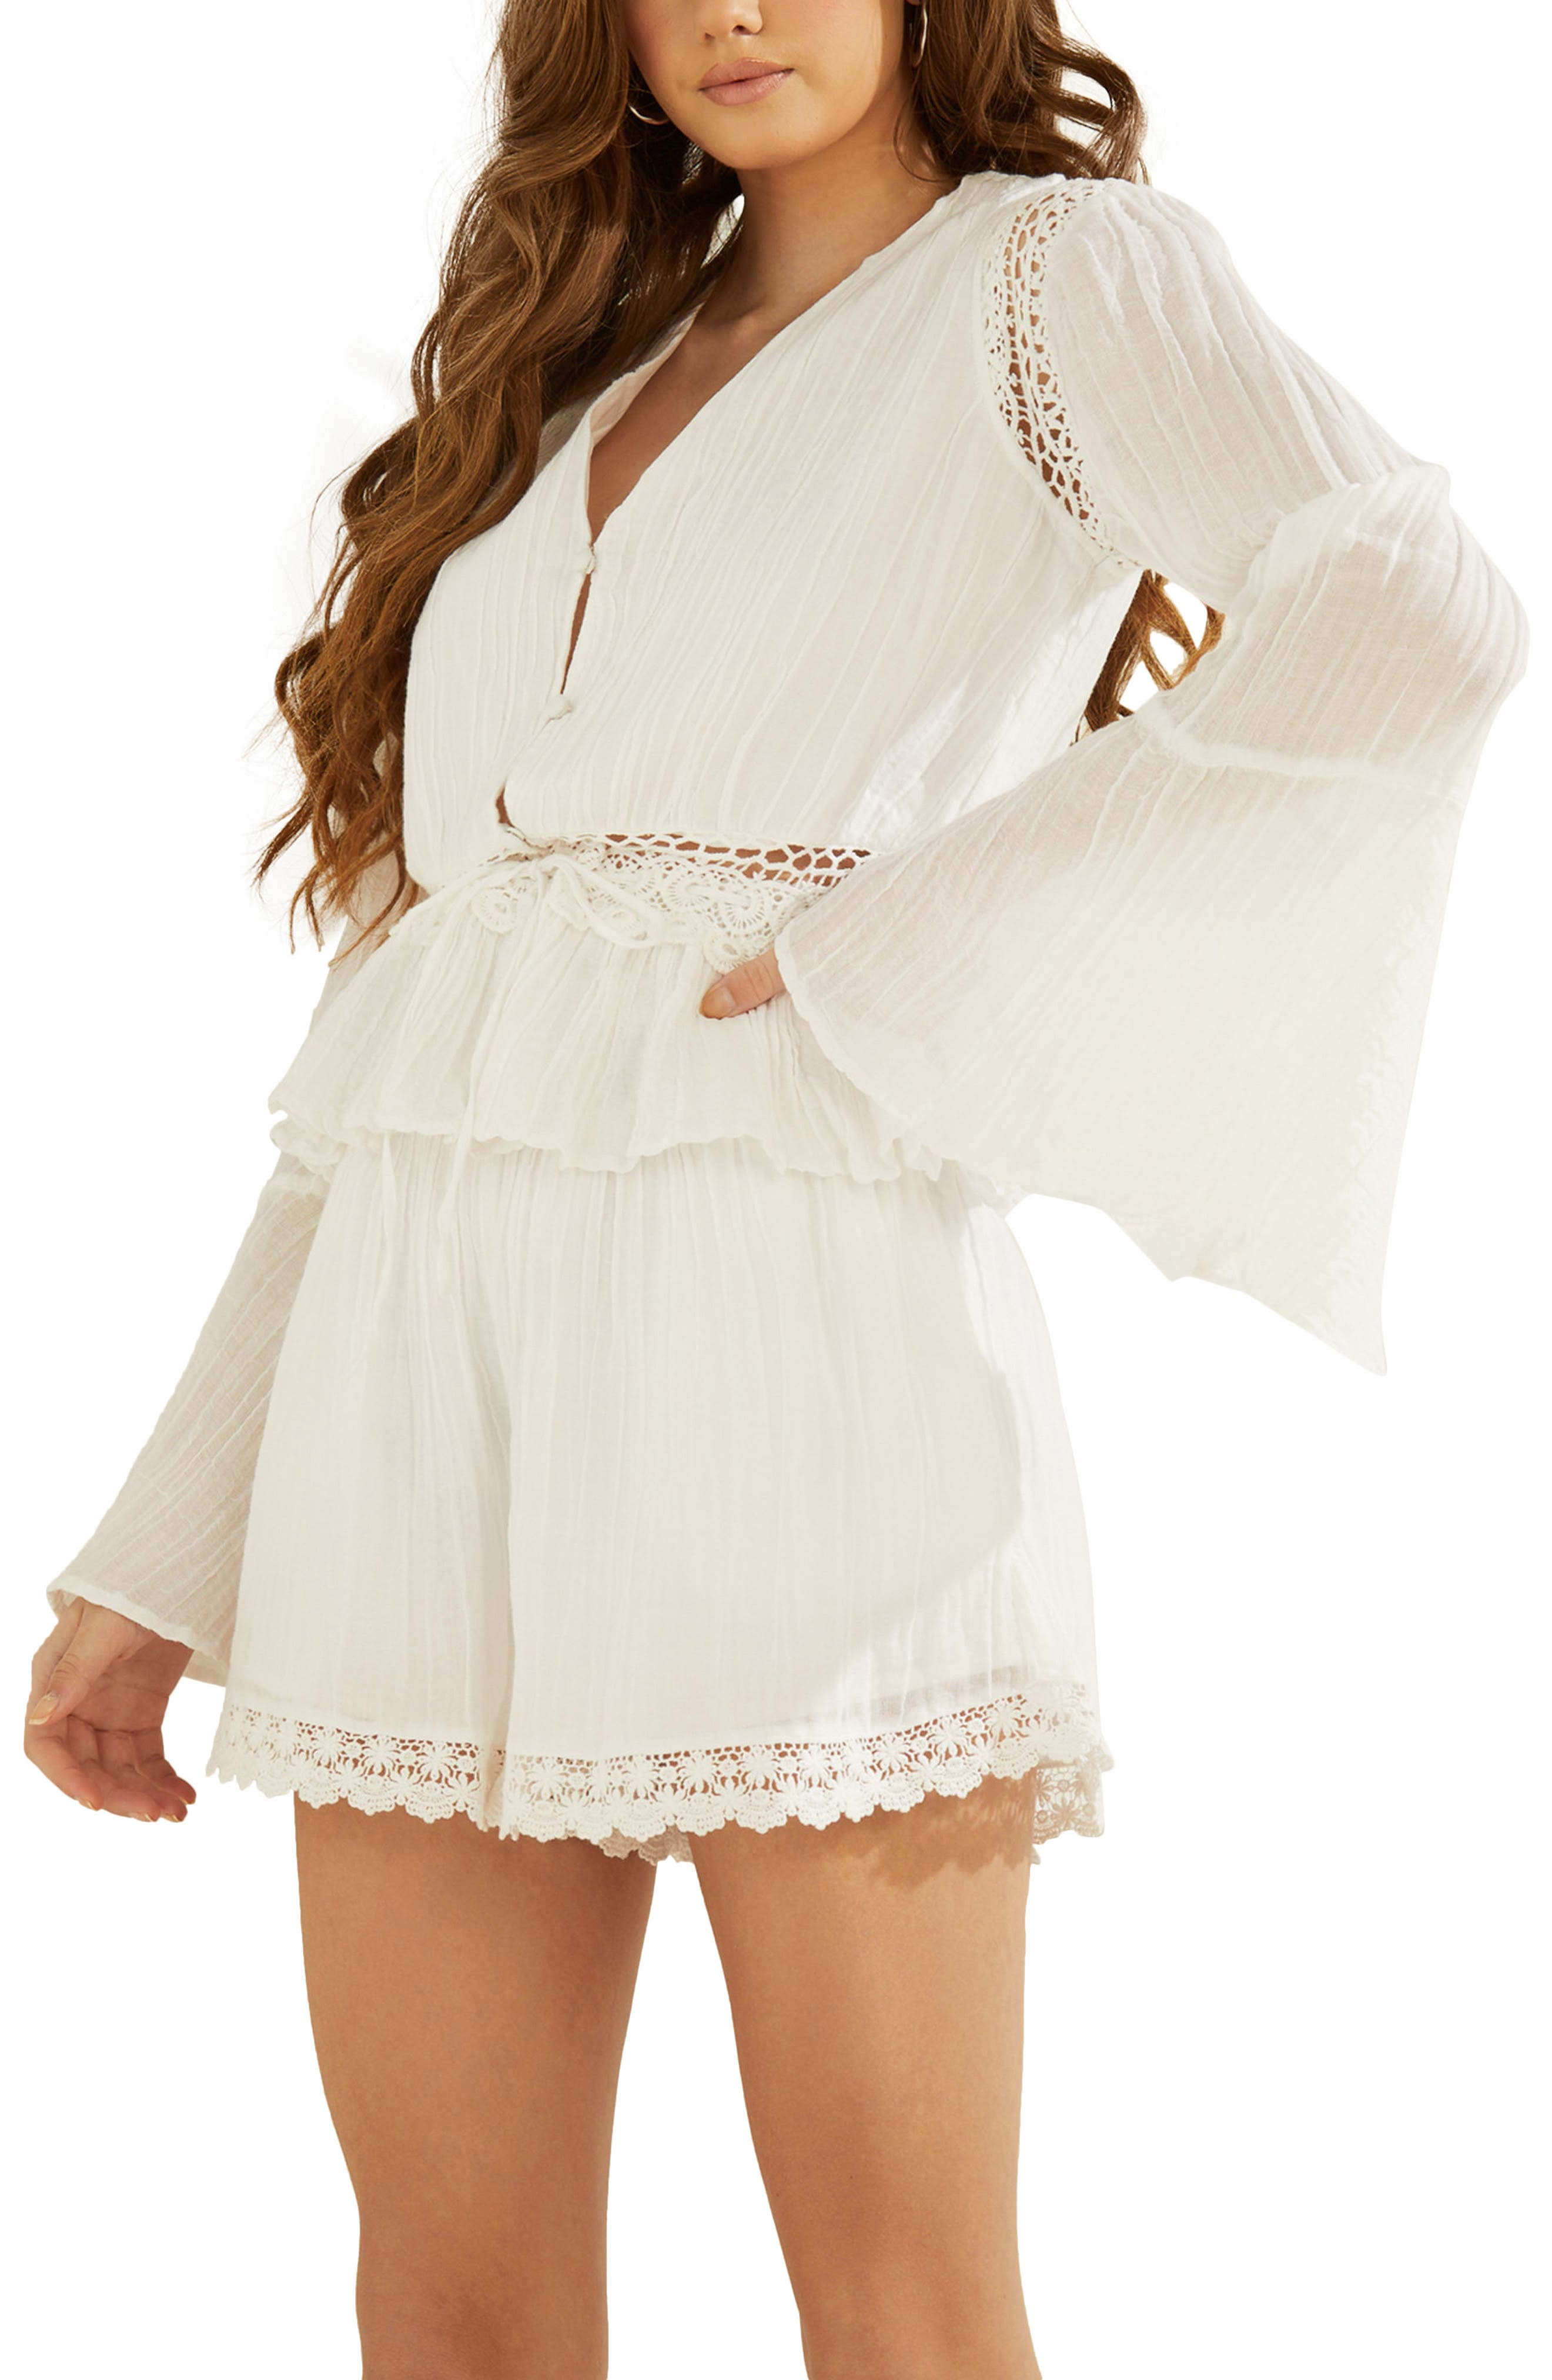 Remi Bell Sleeve Top